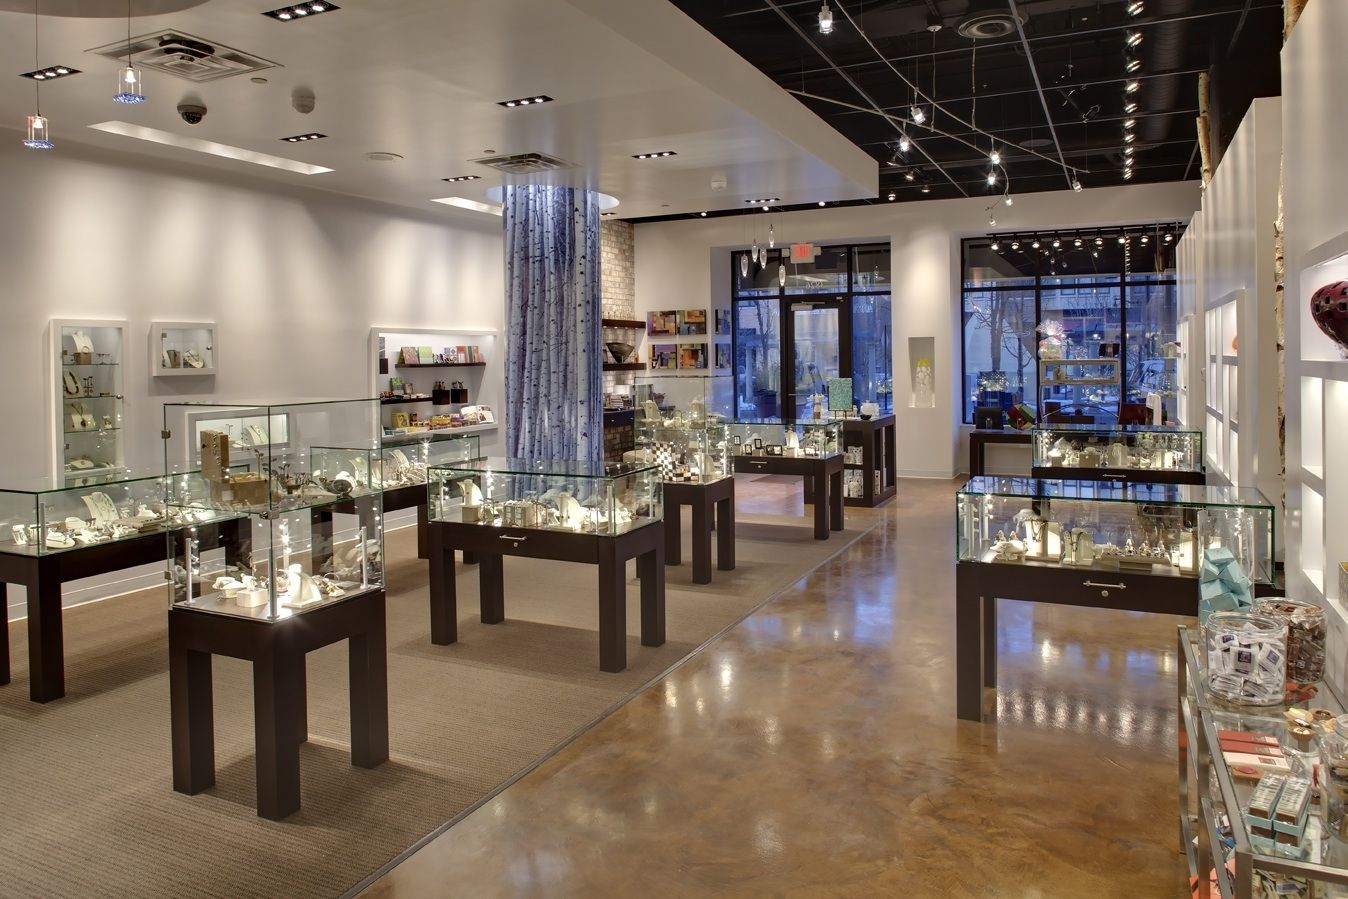 How to Design an Illuminated Jewelry Store